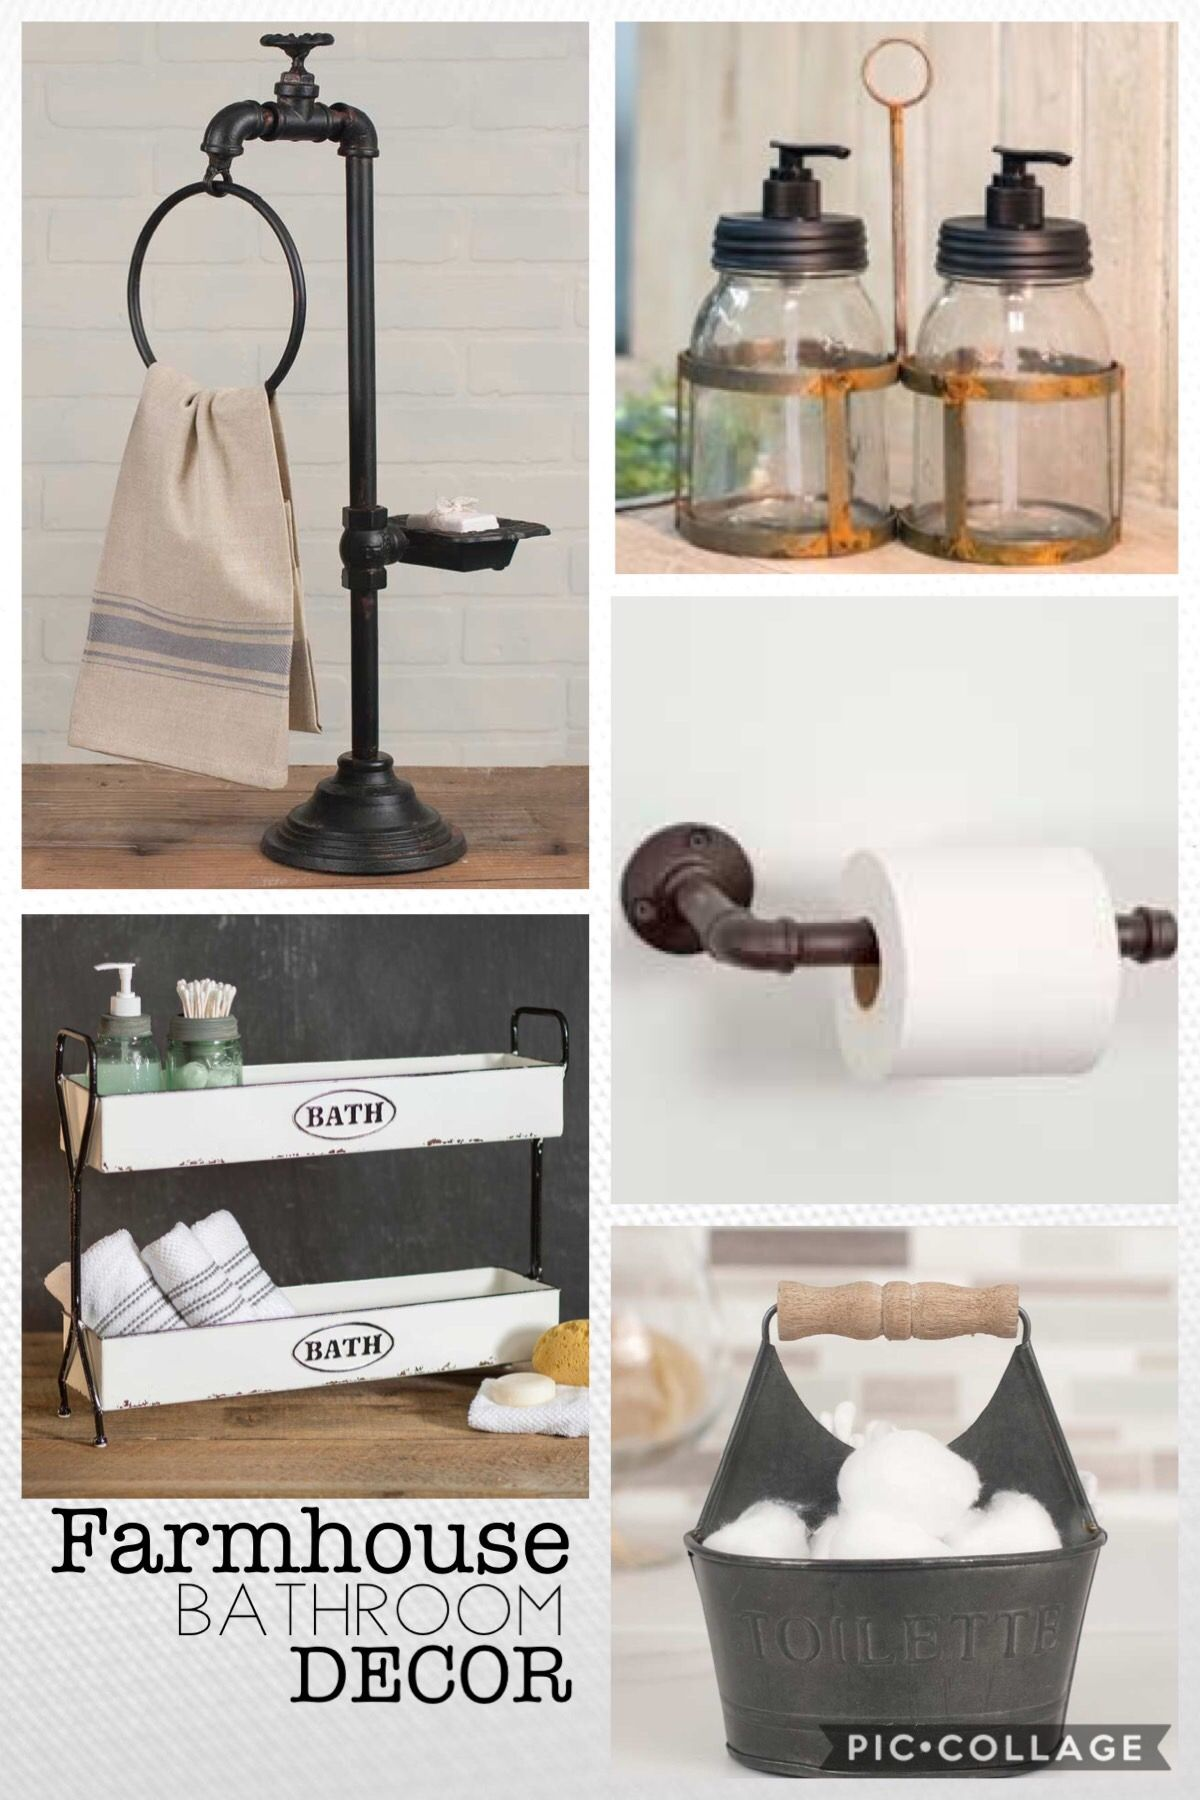 Farmhouse Bathroom Decor Industrial Rustic Country Towel Holder Caddy Toilet Paper Holder Farmhouse Bathroom Decor Farmhouse Bathroom Bathroom Decor